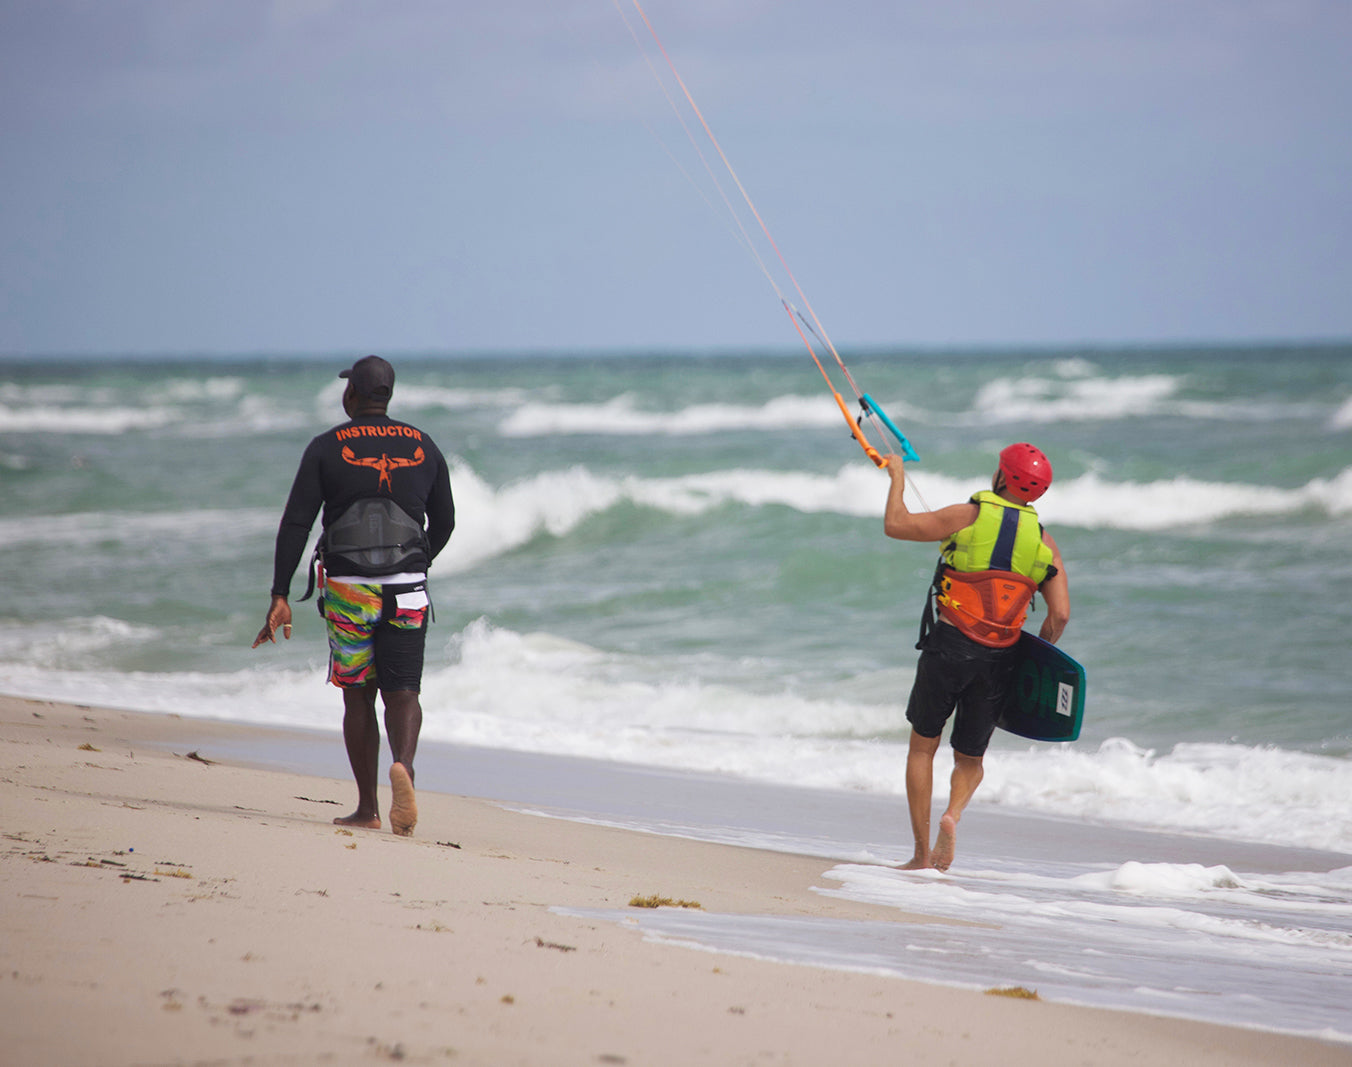 TKS Miami Kiteboarding lessons